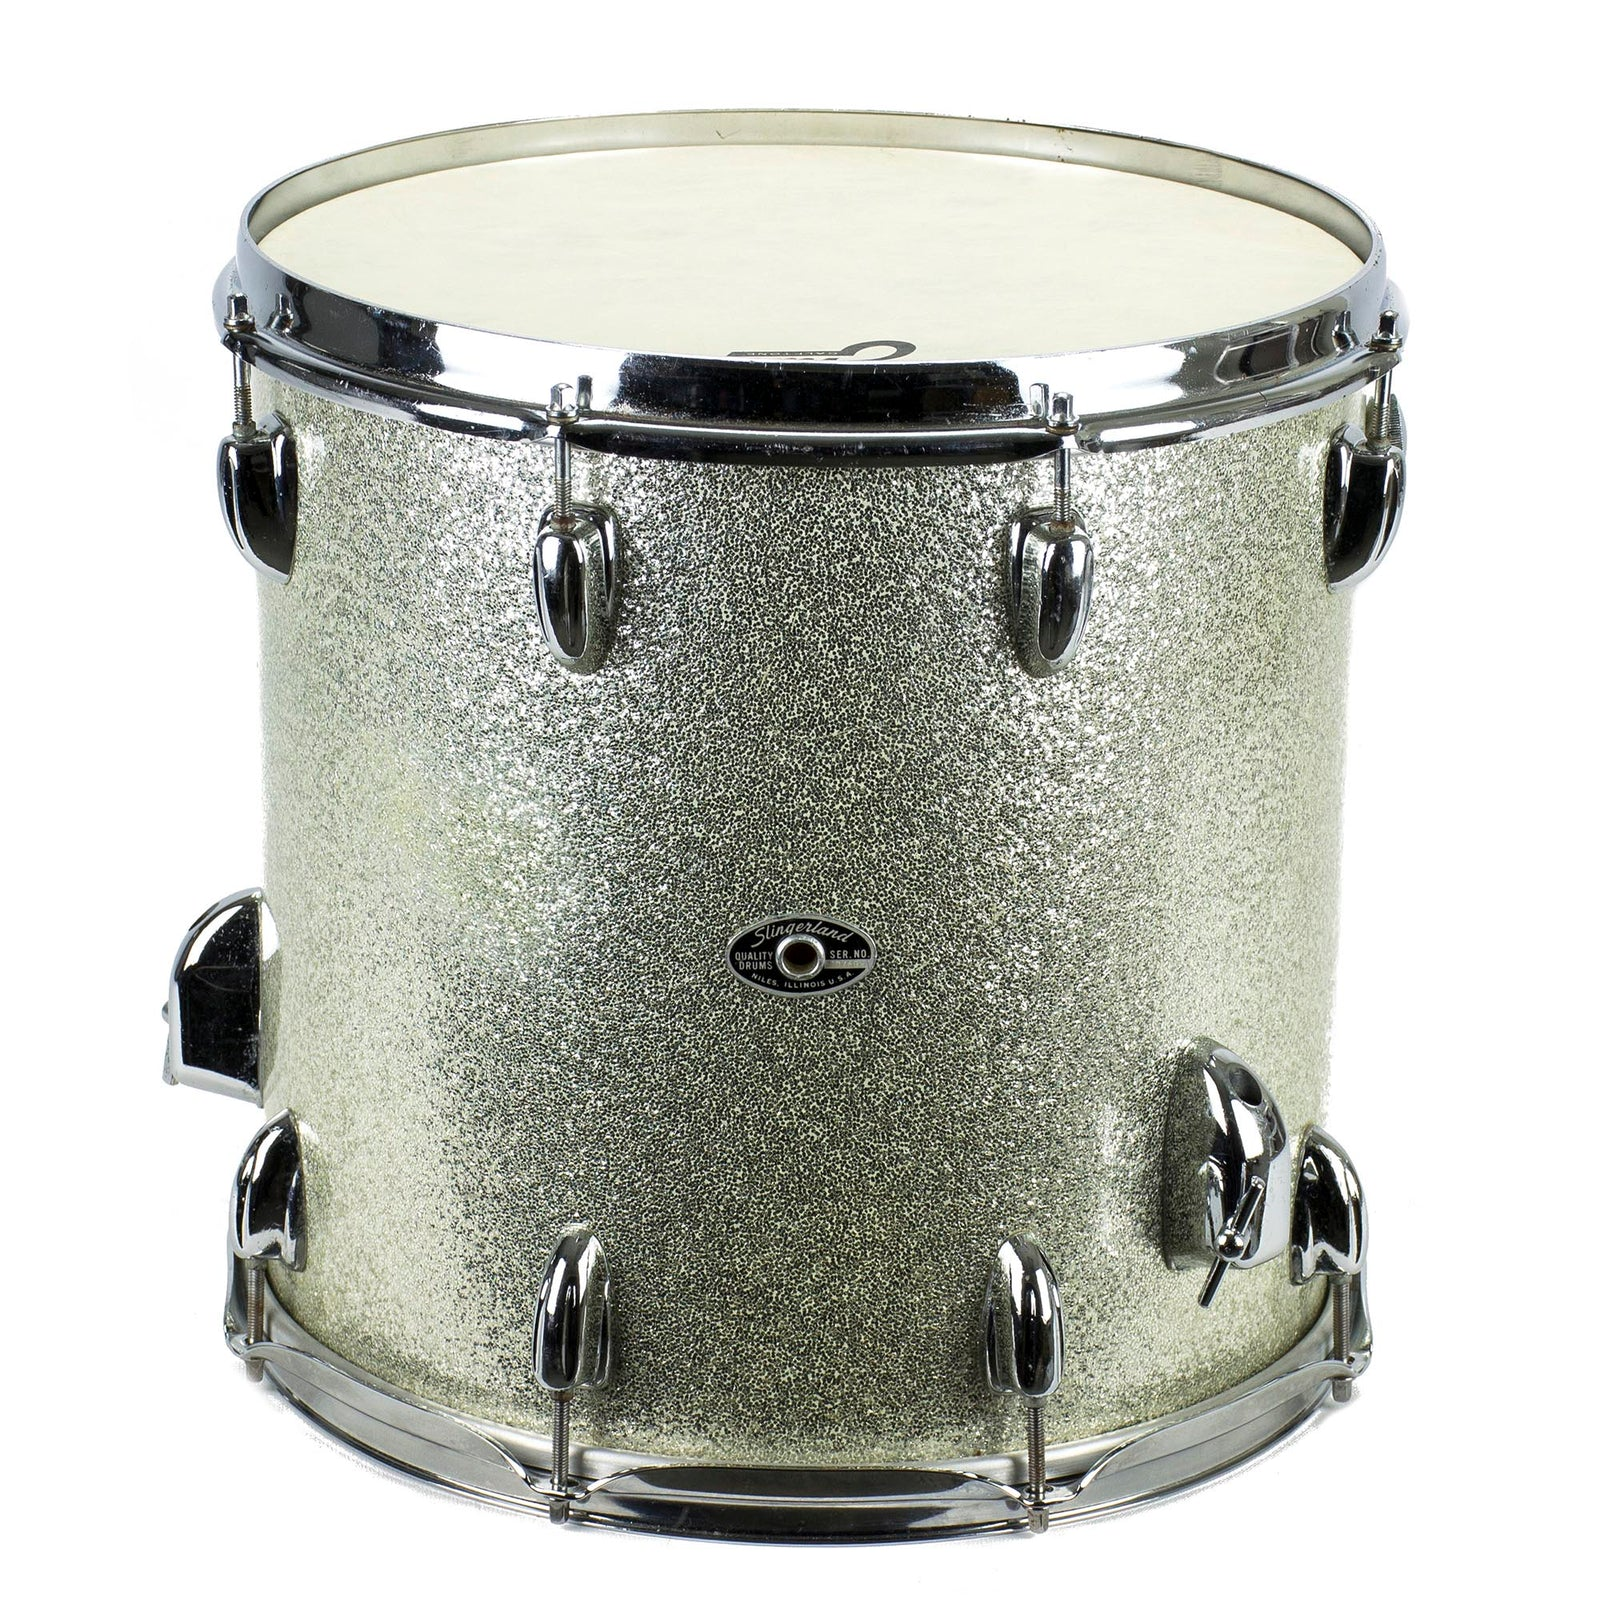 Slingerland 14x14 Silver Sparkle Early 70'S Floor Tom With Bag - Used